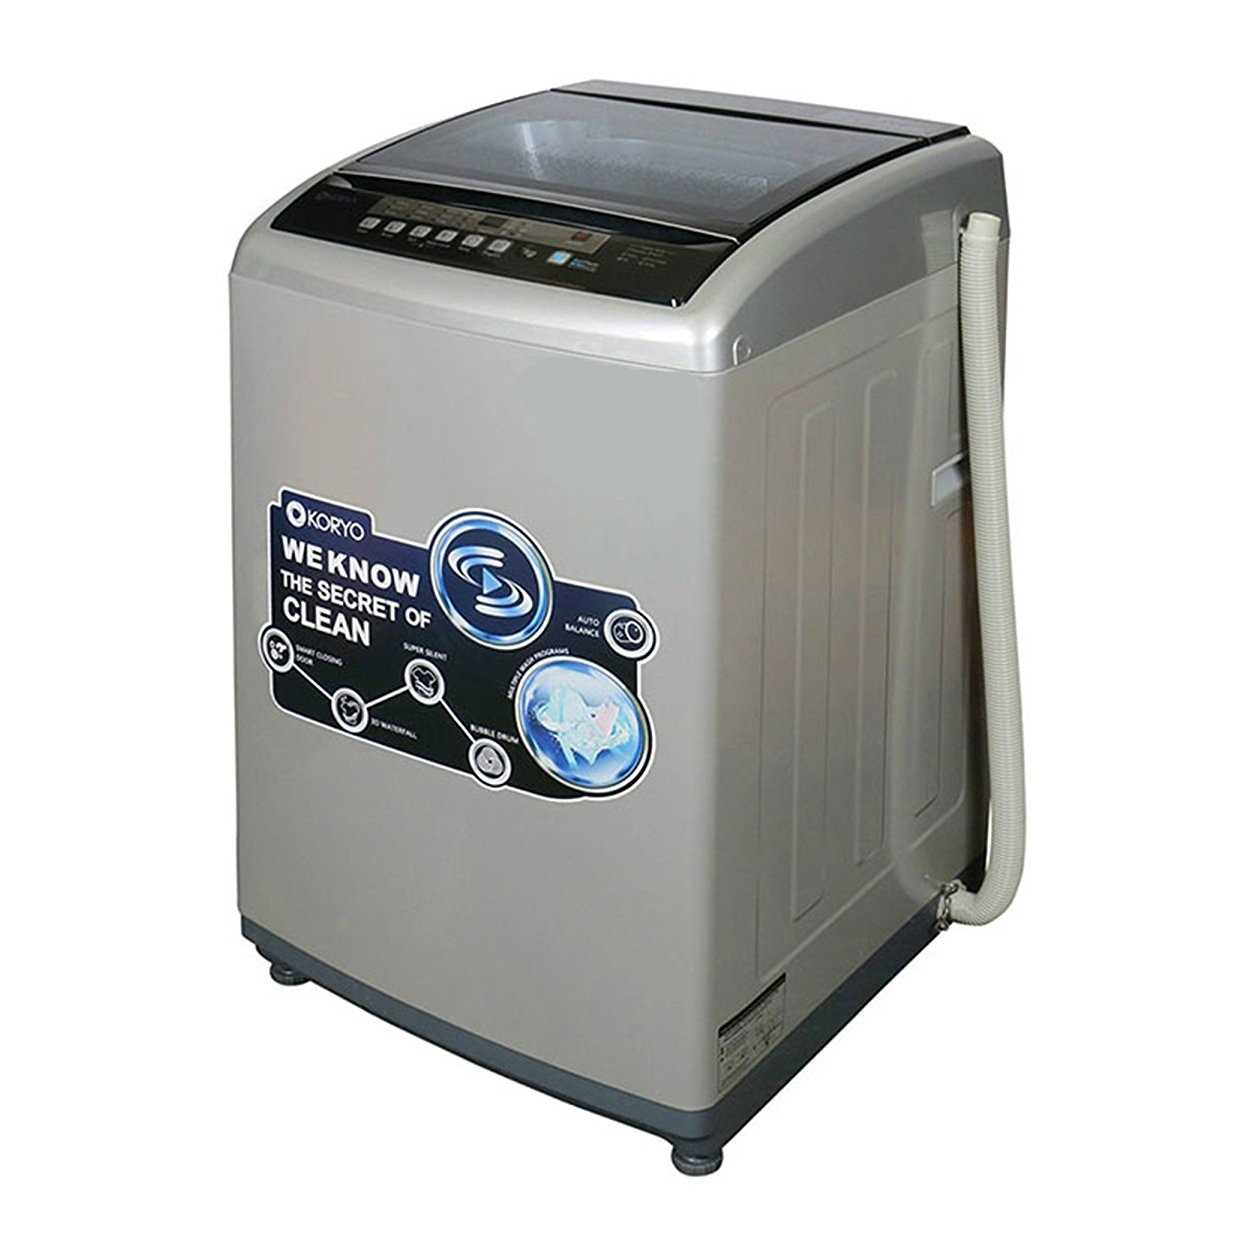 Koryo KWM1000TL 10 Kg Fully Automatic Top Loading Washing Machine